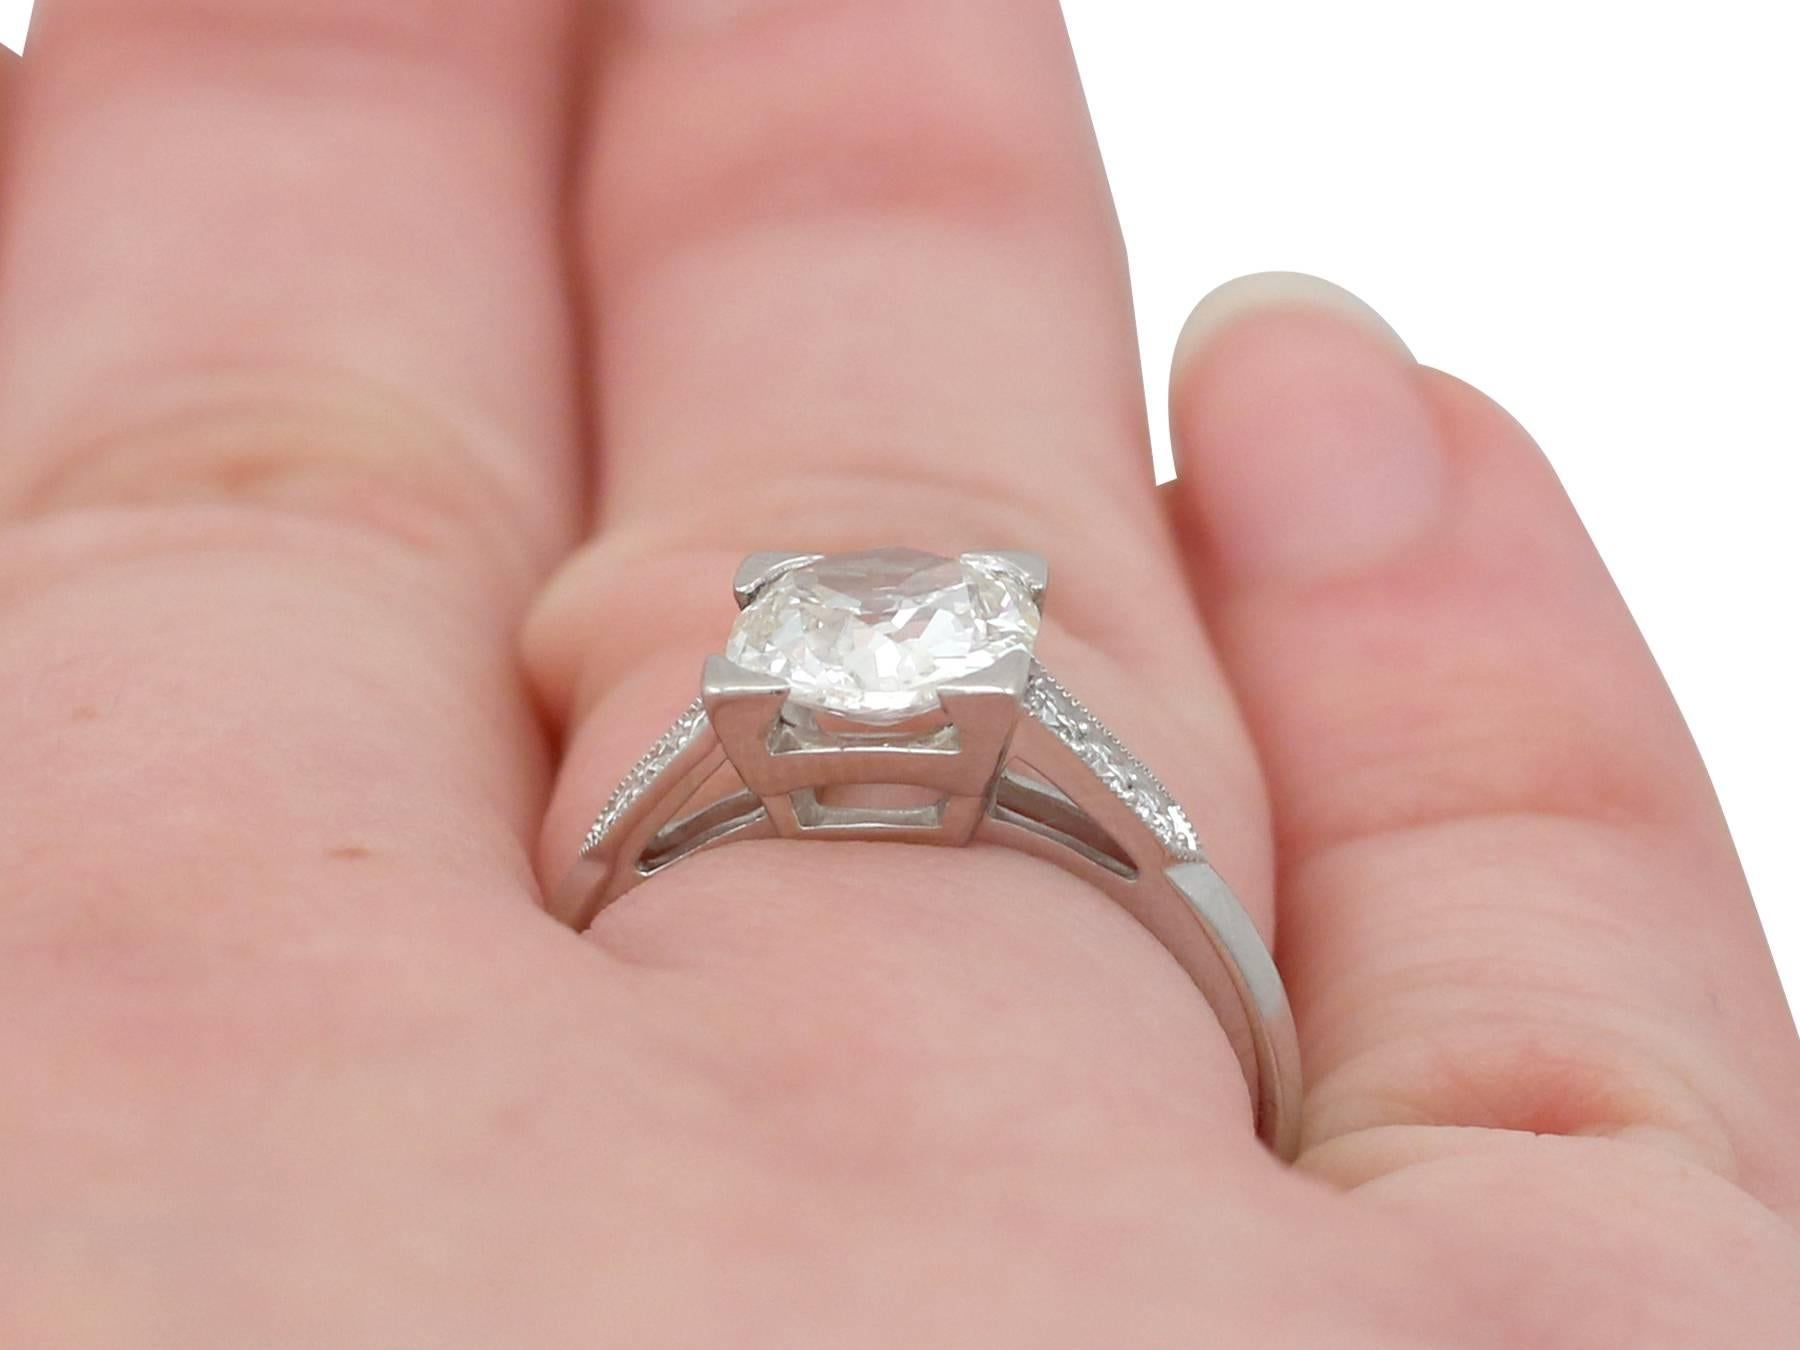 1.74 Carat Diamond and Platinum Solitaire Ring For Sale at 1stdibs